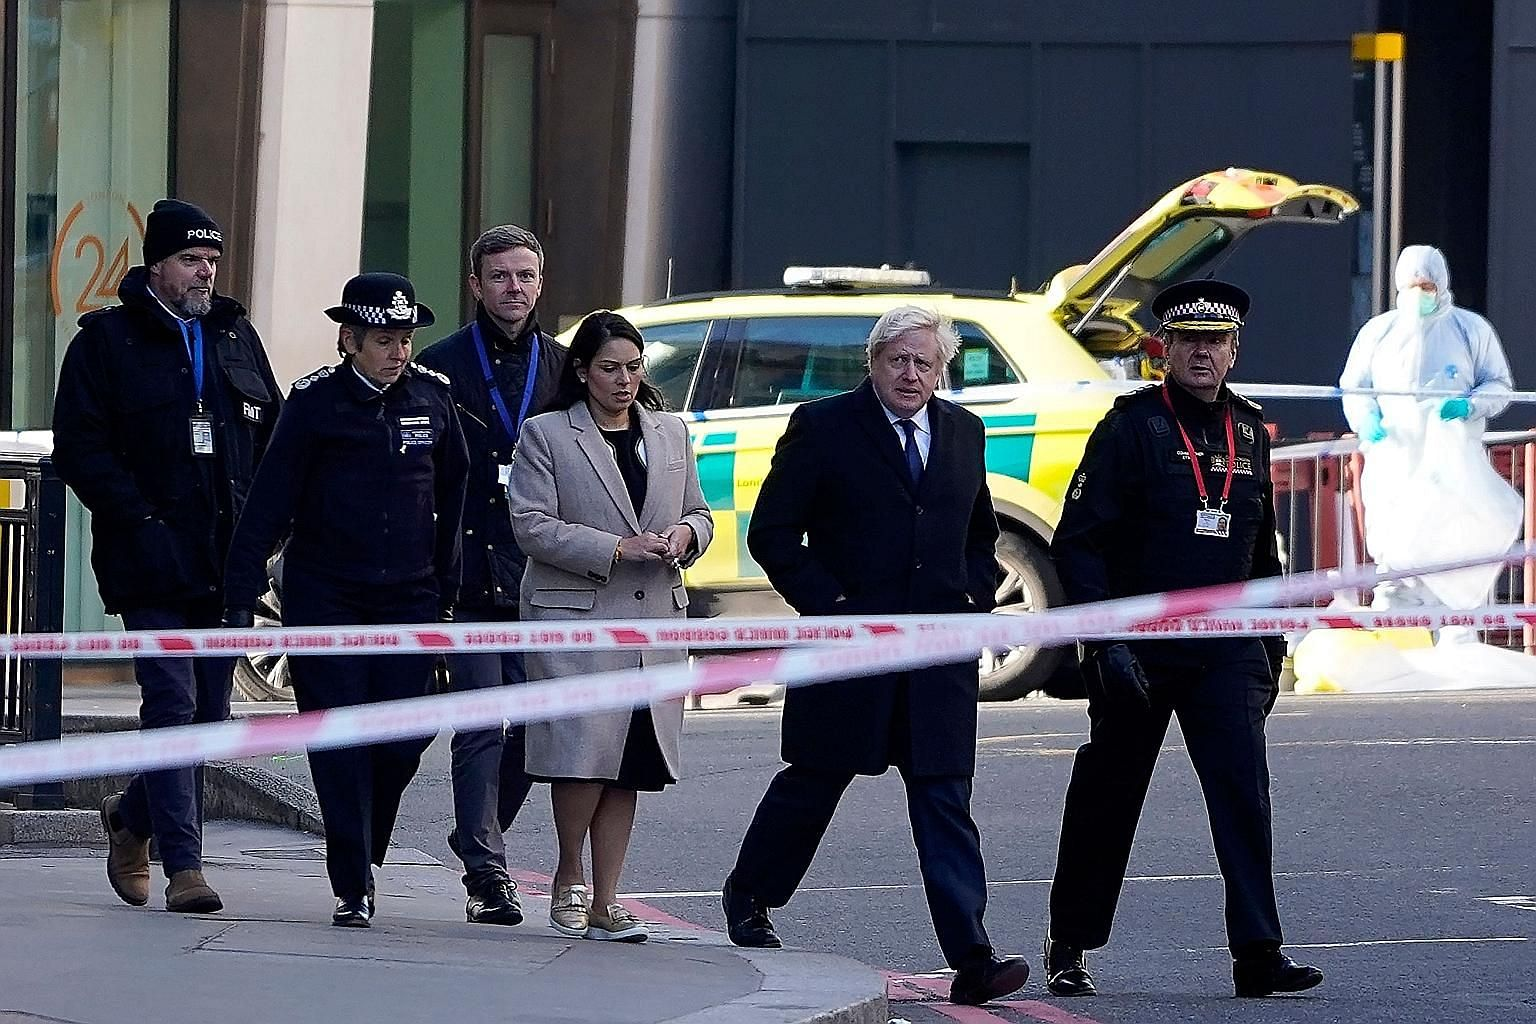 British Prime Minister Boris Johnson, flanked by Home Secretary Priti Patel and City of London Police Commissioner Ian Dyson, arriving yesterday at the scene of the attack on London Bridge. Mr Johnson cancelled his election activities yesterday so he